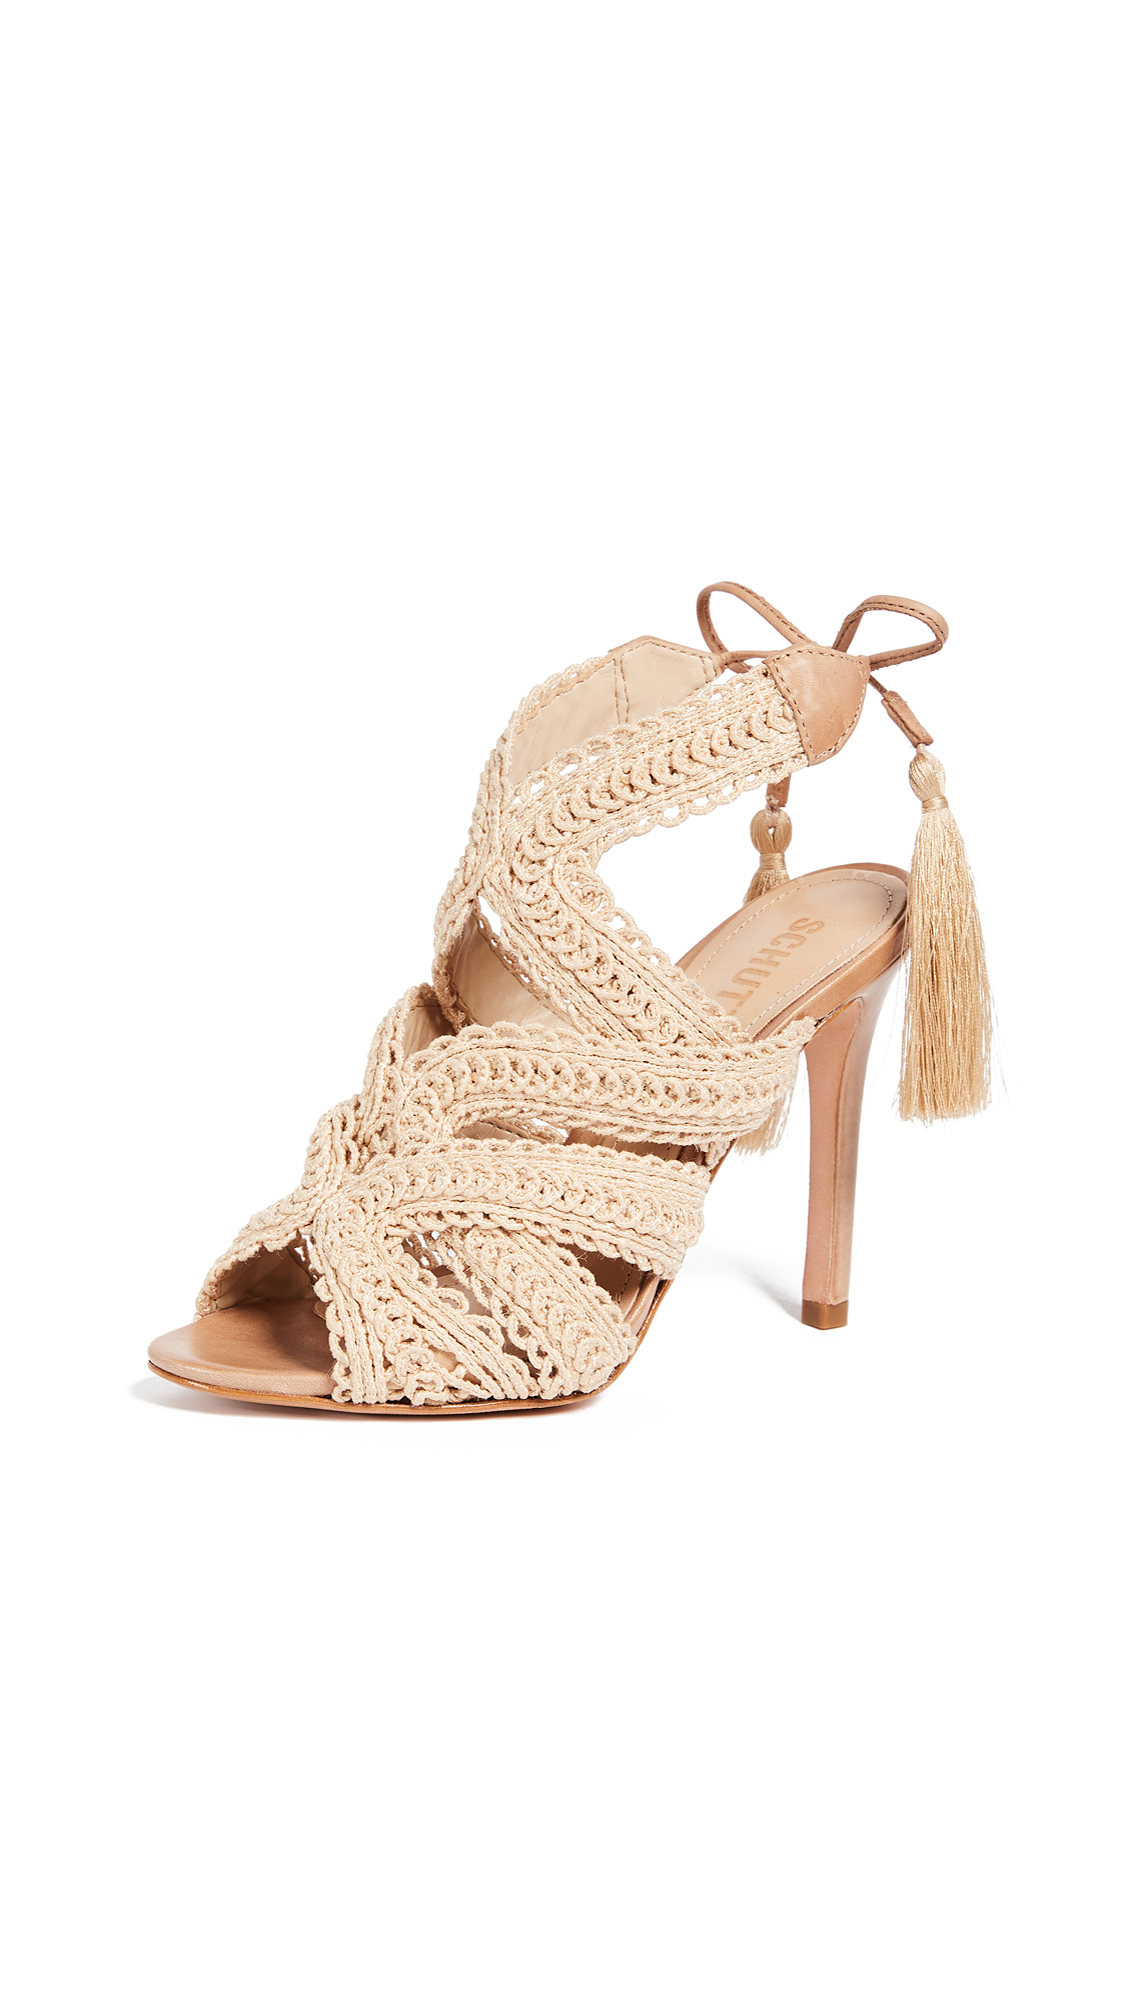 Schutz Glaucia Strappy Sandals - Natural/Desert